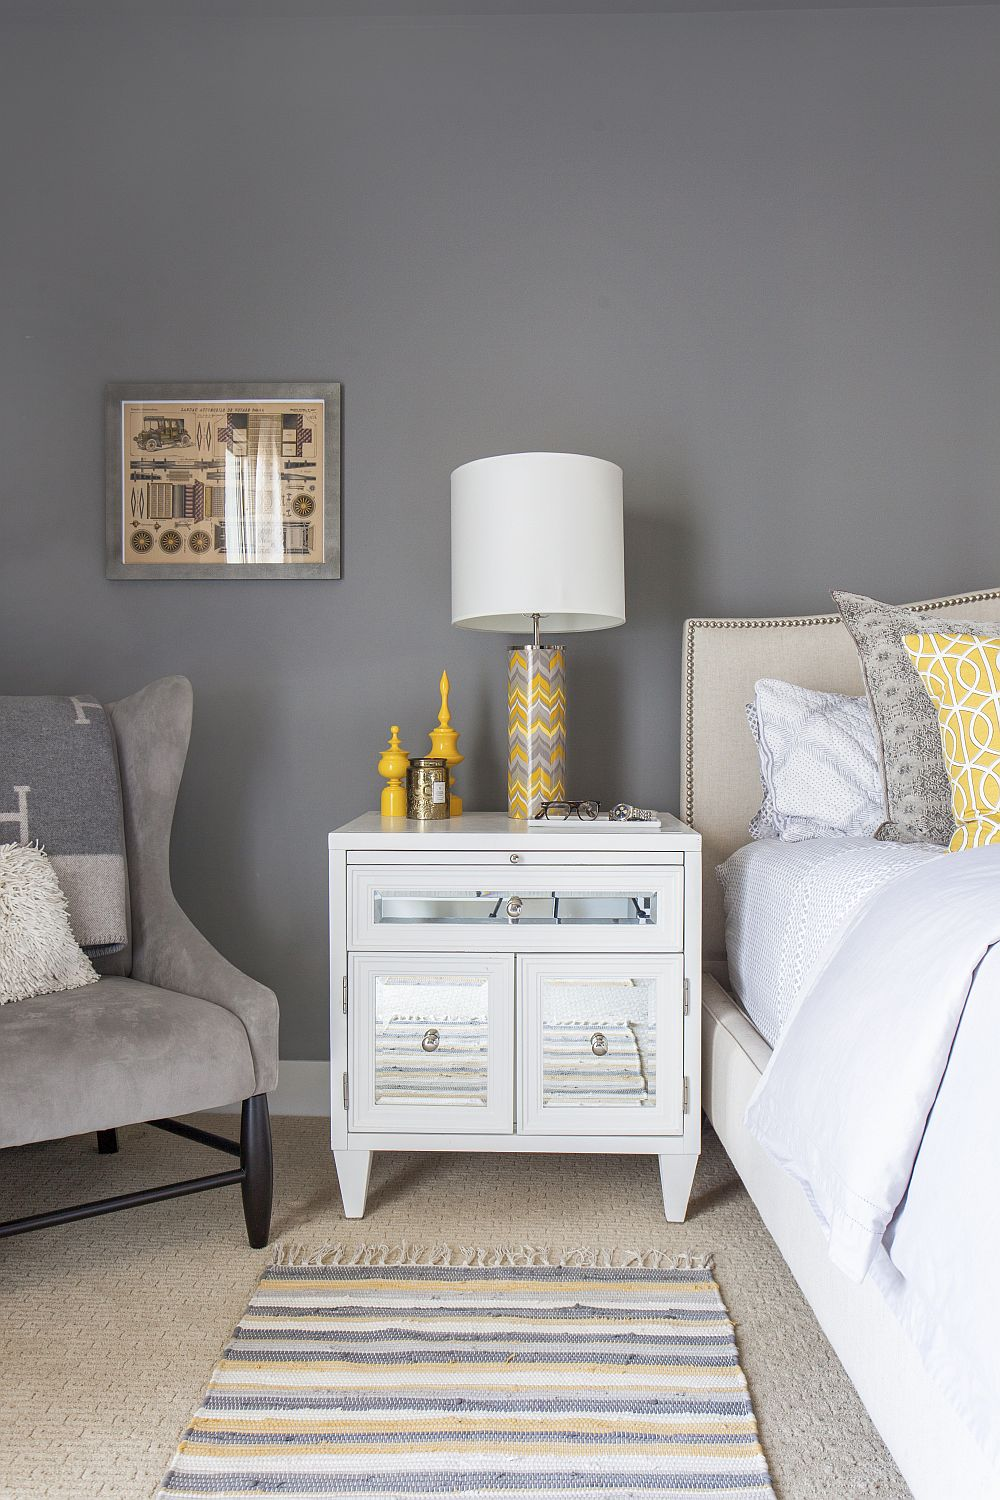 Snug los angeles home captivates with color and ingenuity for Gray and yellow bedroom